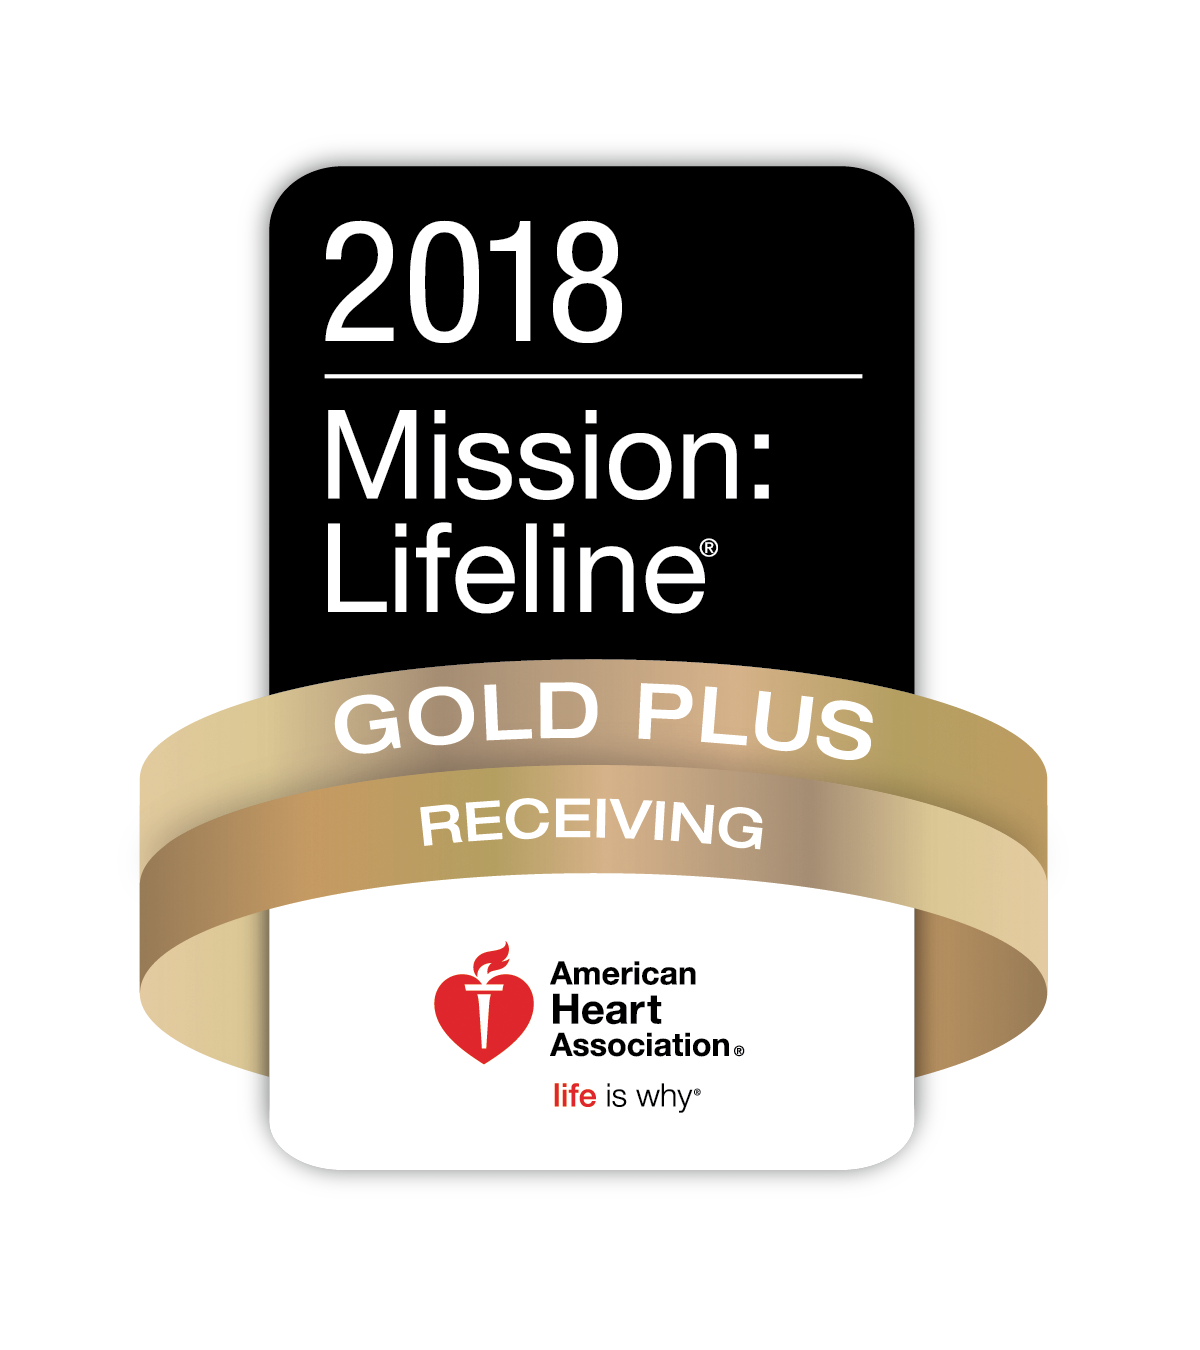 STEMI%20Mission%20lifeline%202018%20gold%20plus%20logo.png